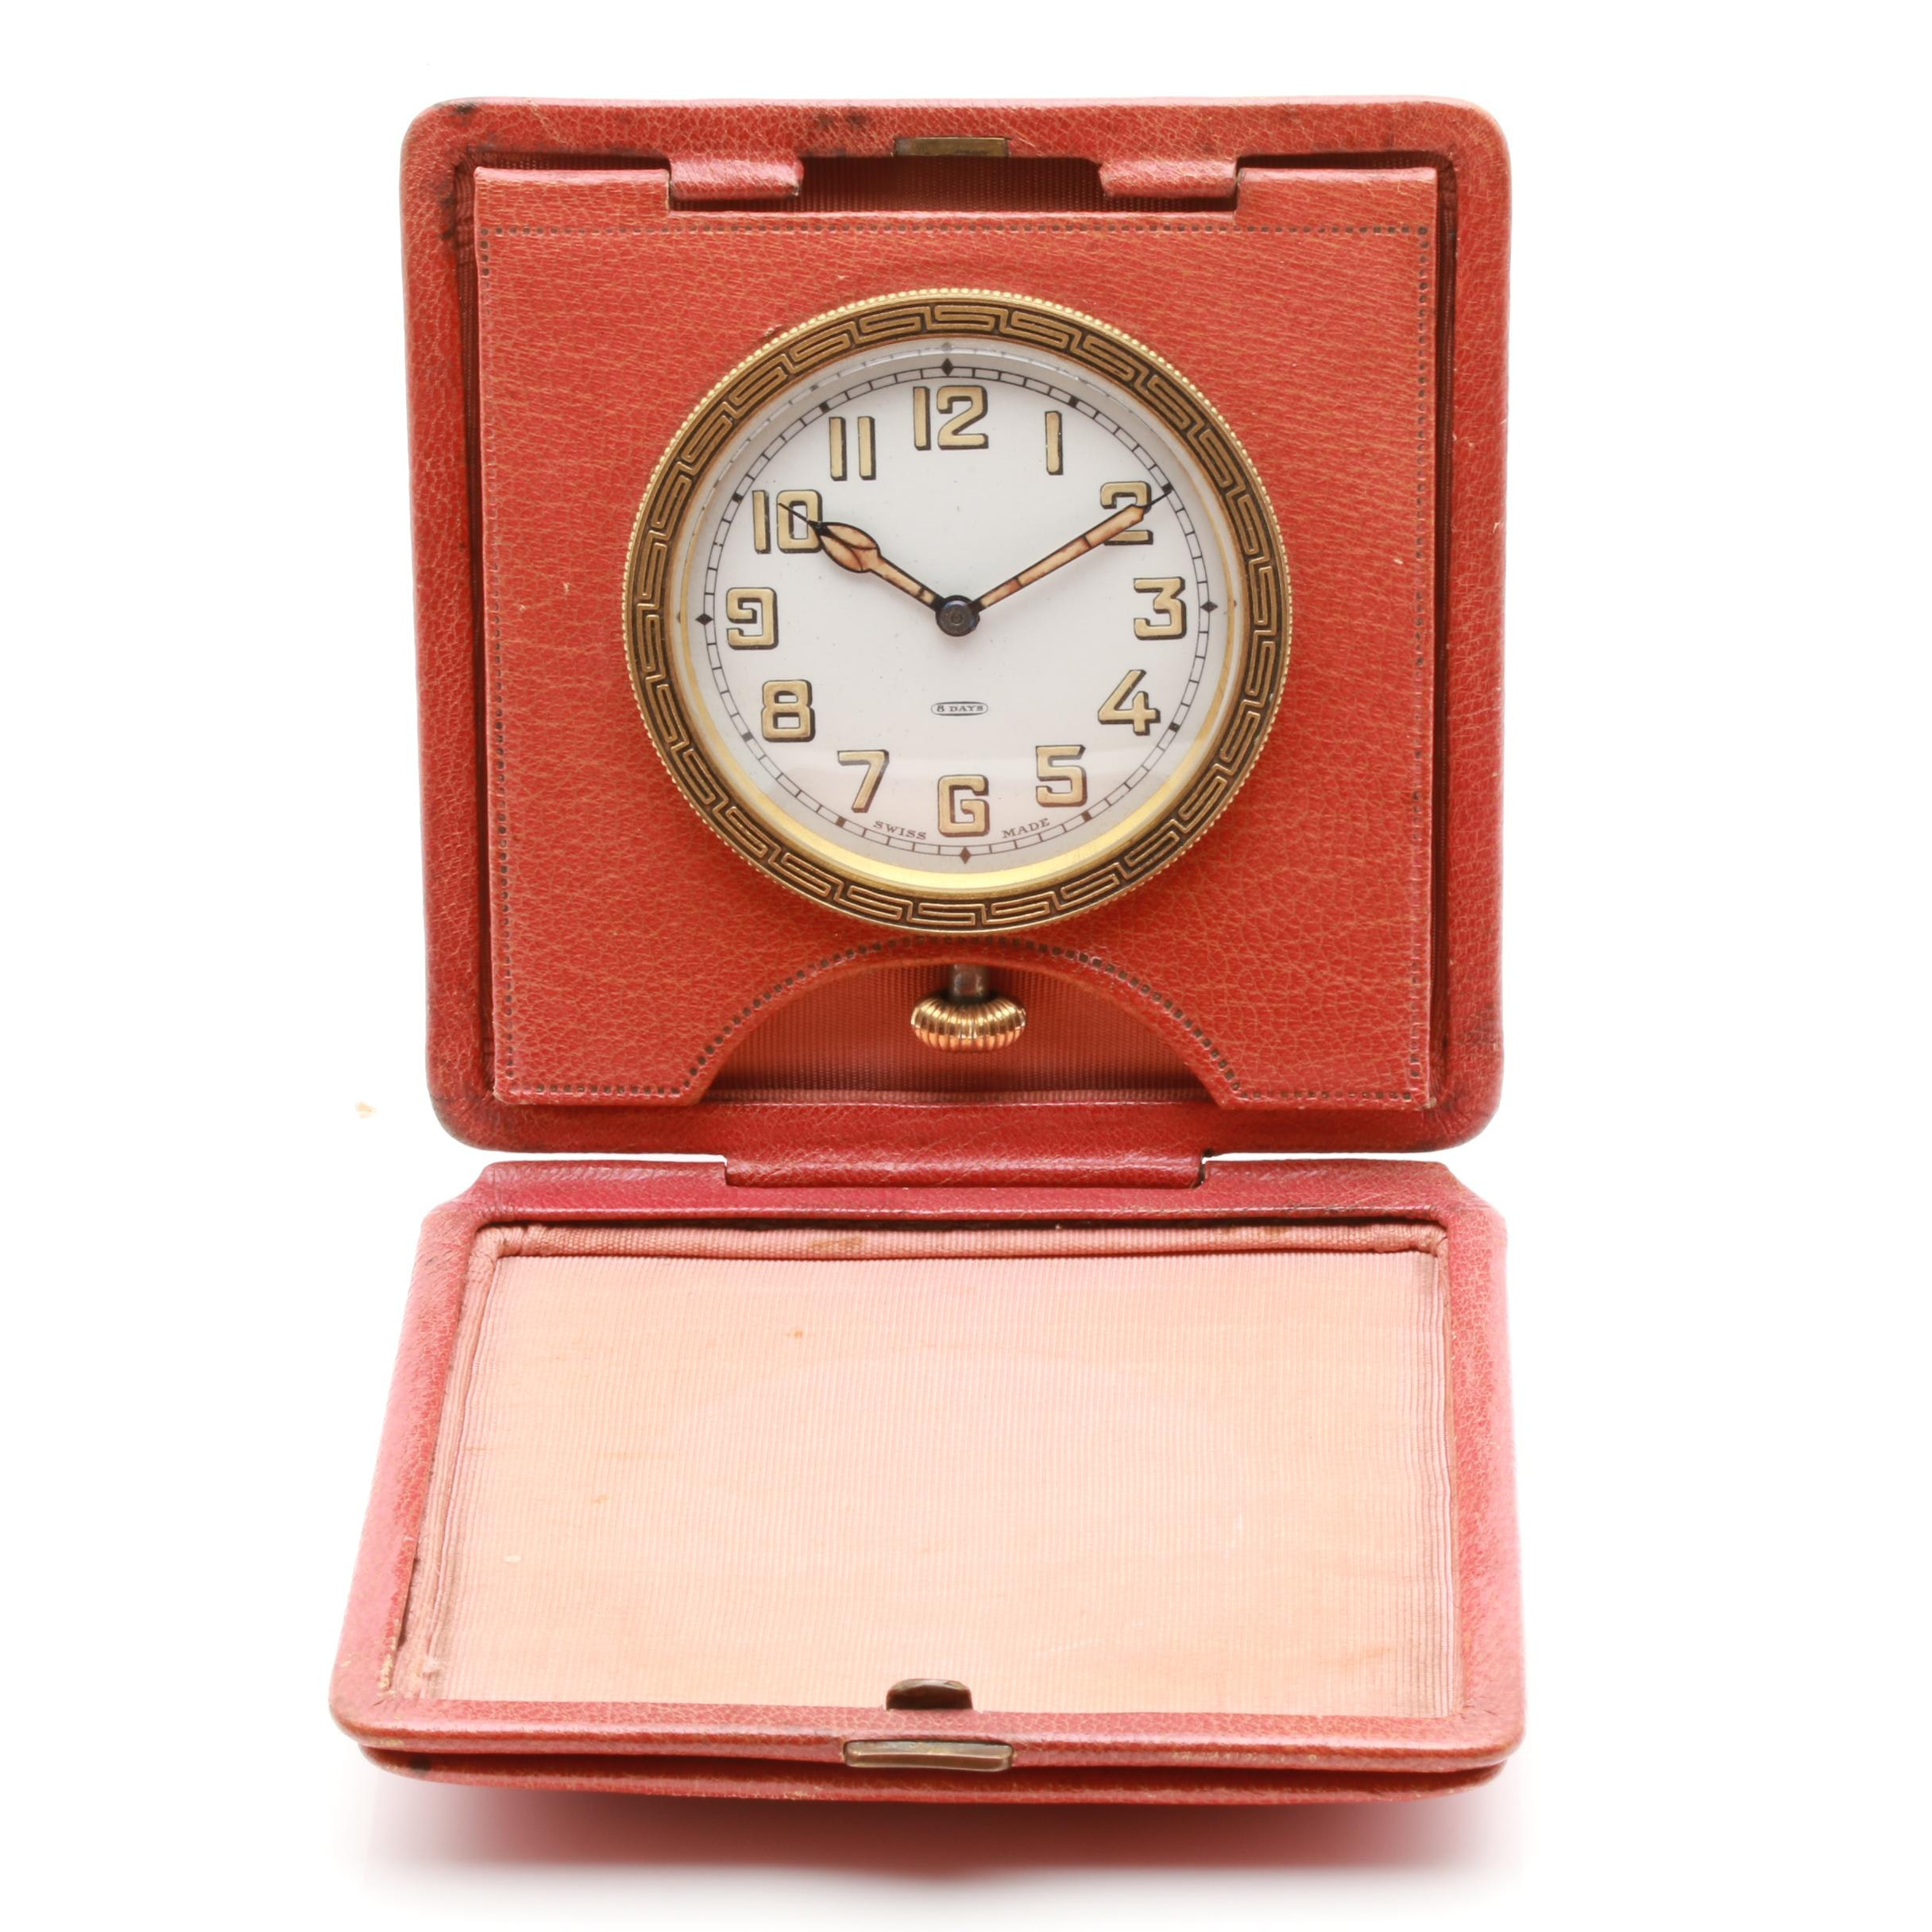 Circa 1920s Sandoz Swiss Eight Day Travel Clock with Leather Case